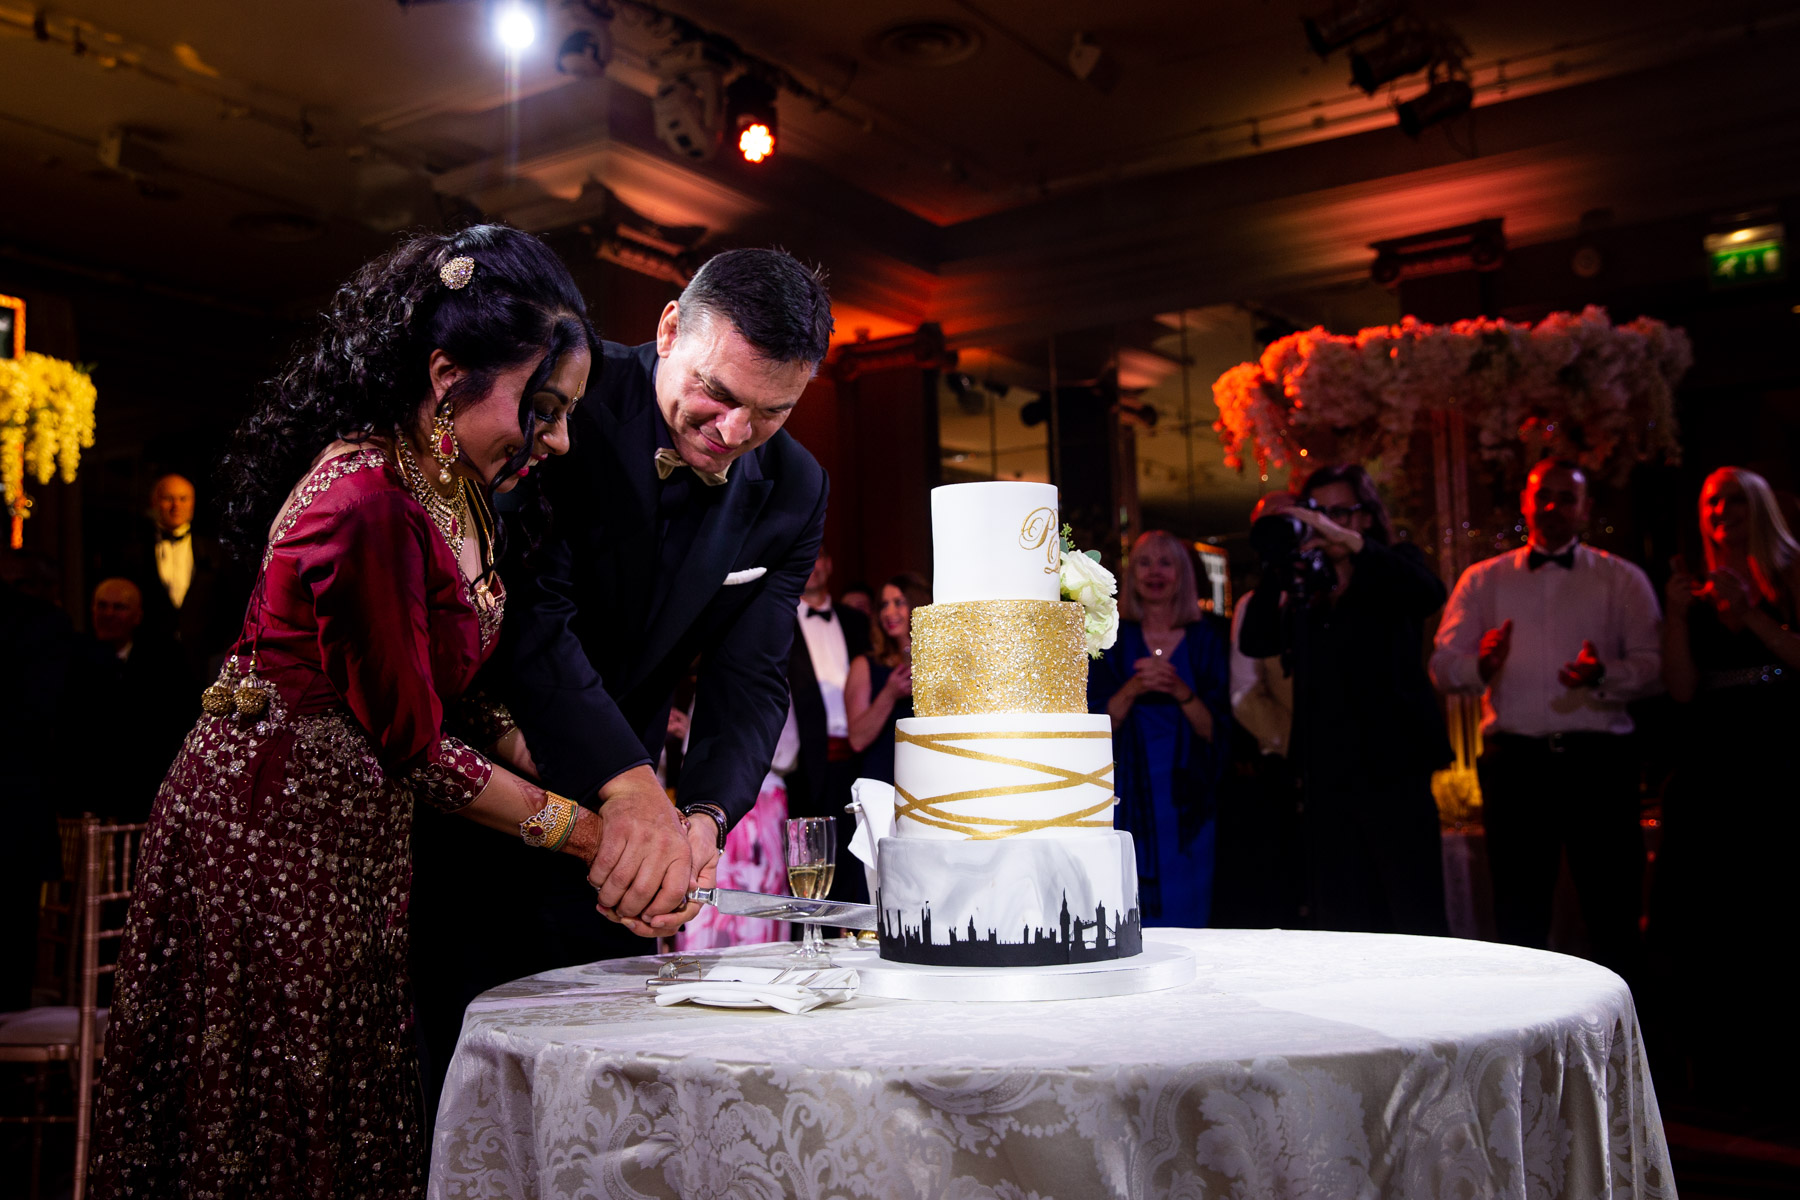 Relaxed and beautiful cake cutting with bride and groom